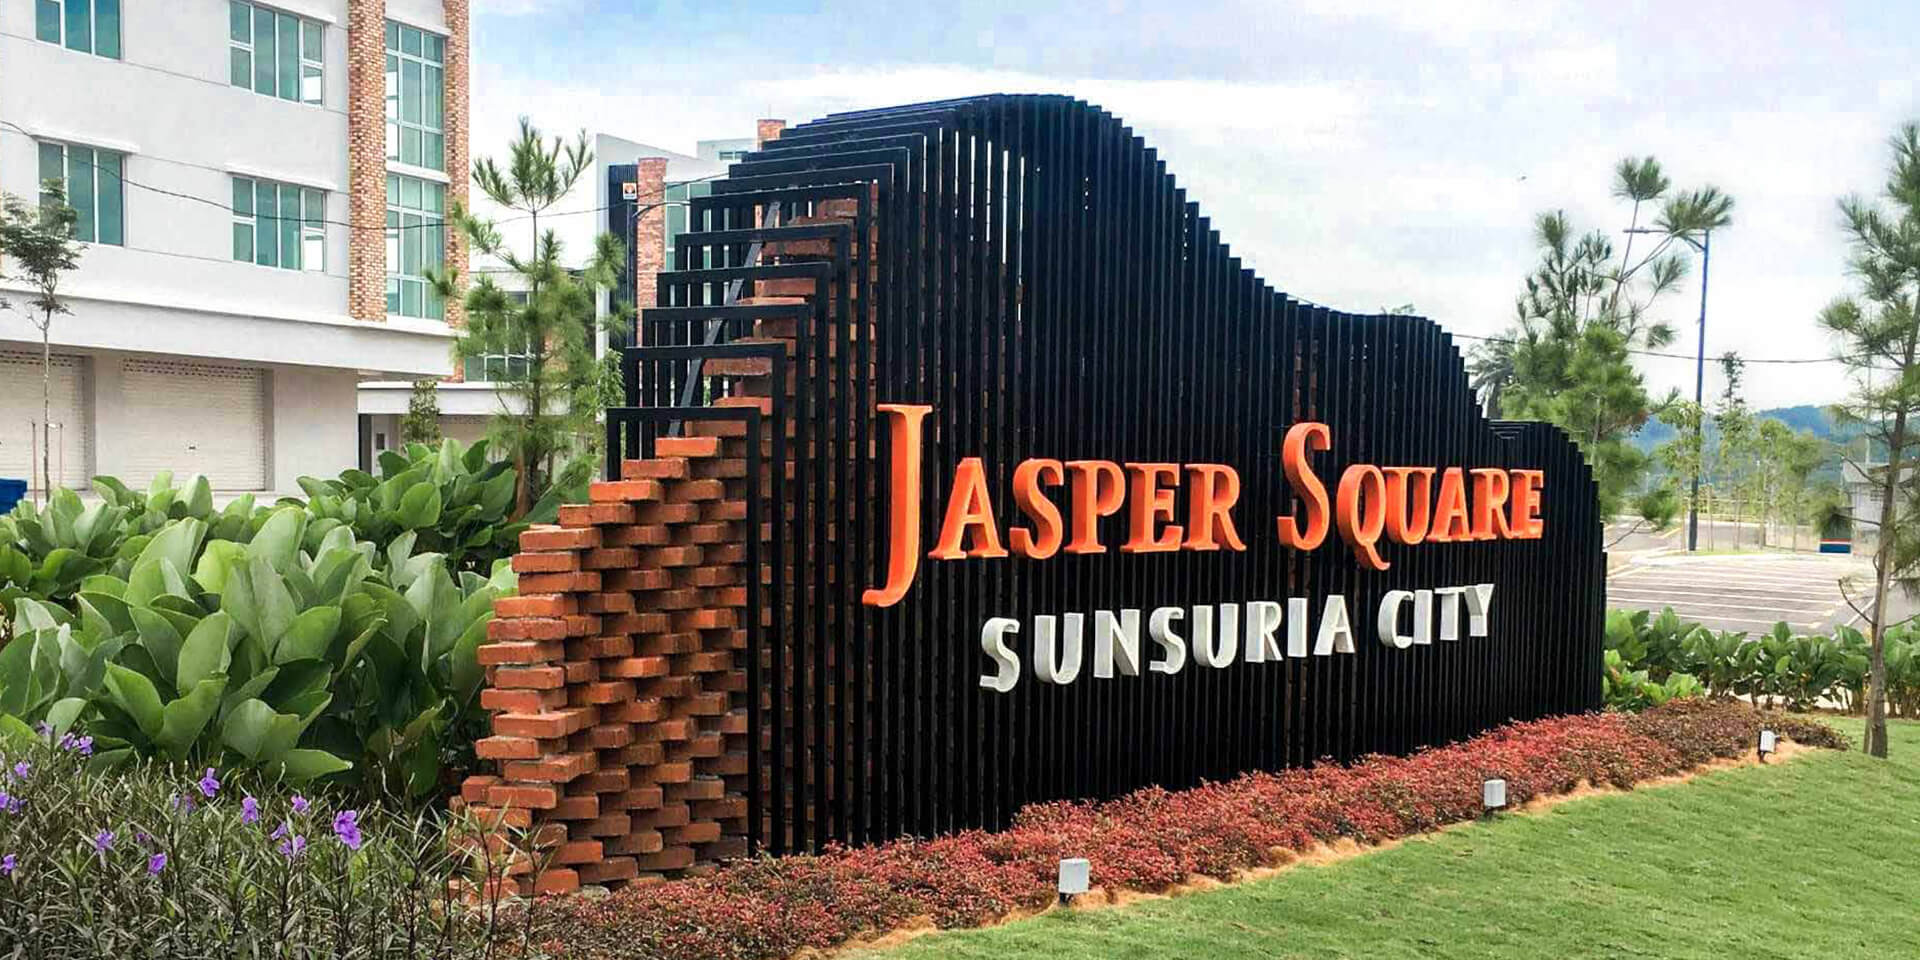 Jasper Square Entrance Statement